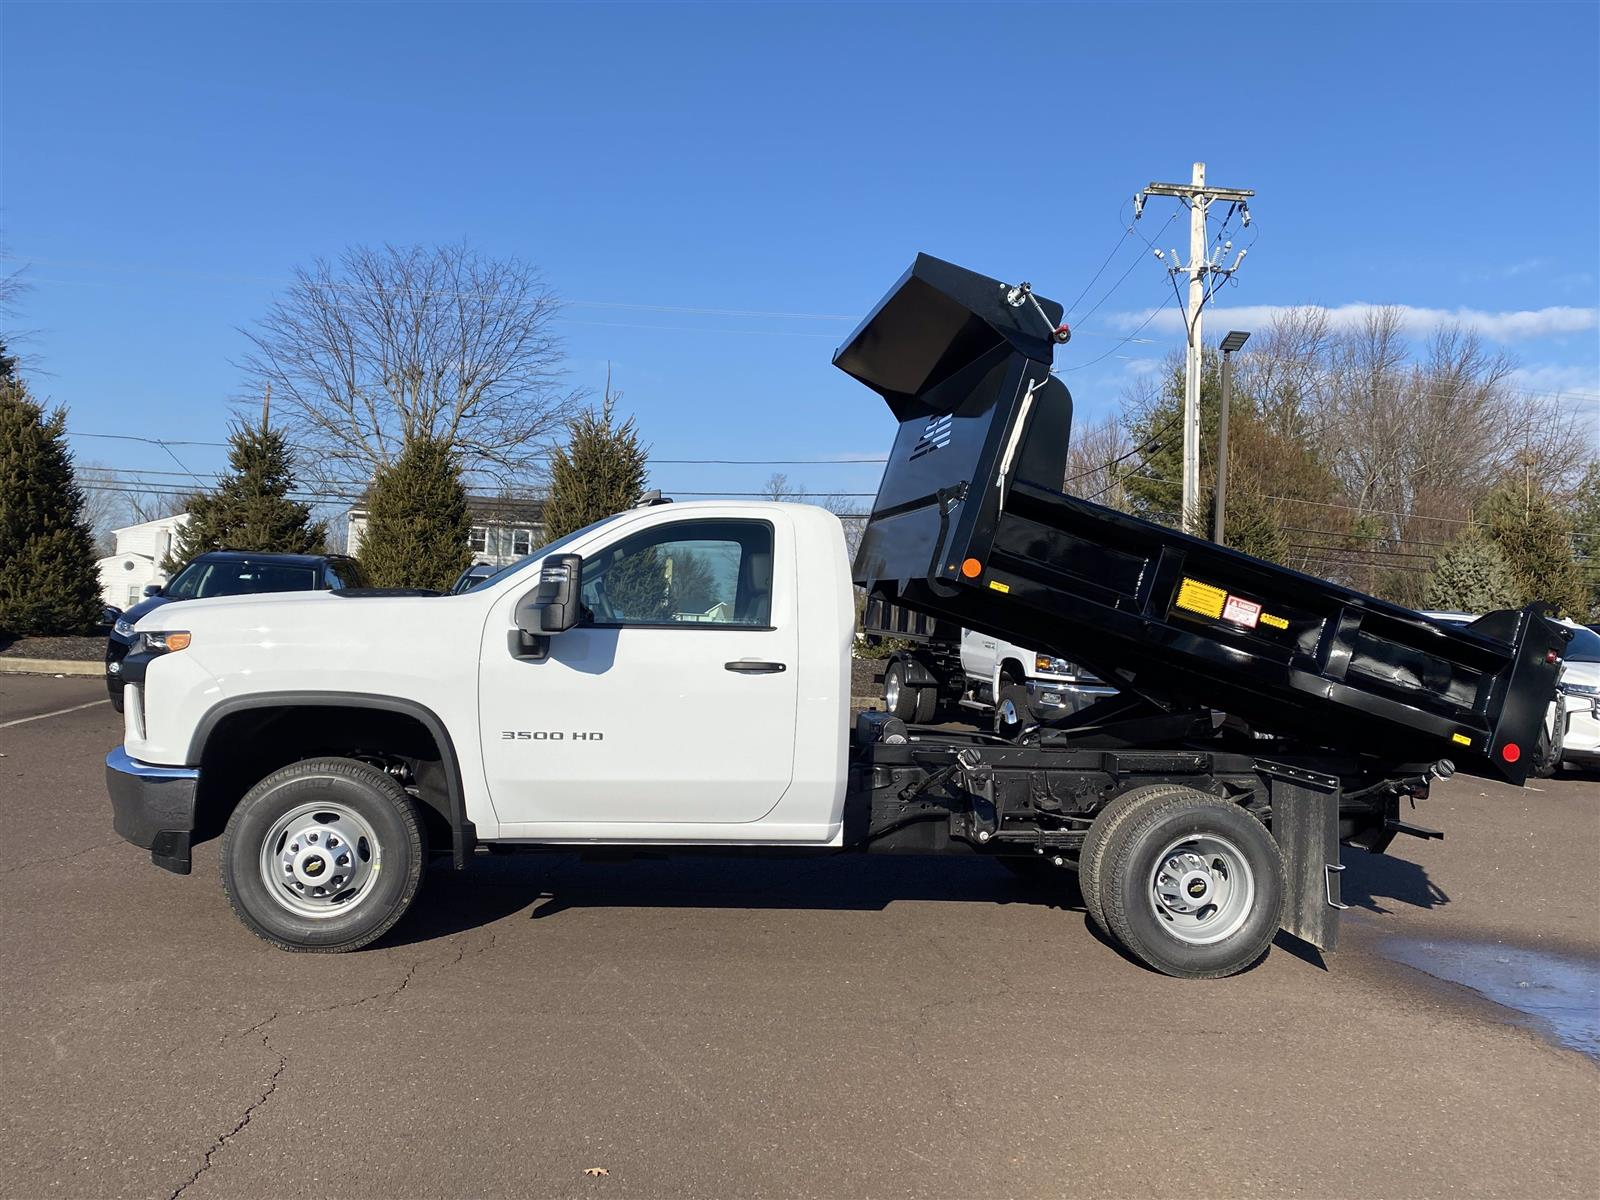 2021 Chevrolet Silverado 3500 Regular Cab 4x4, Crysteel E-Tipper Dump Body #1315R - photo 4